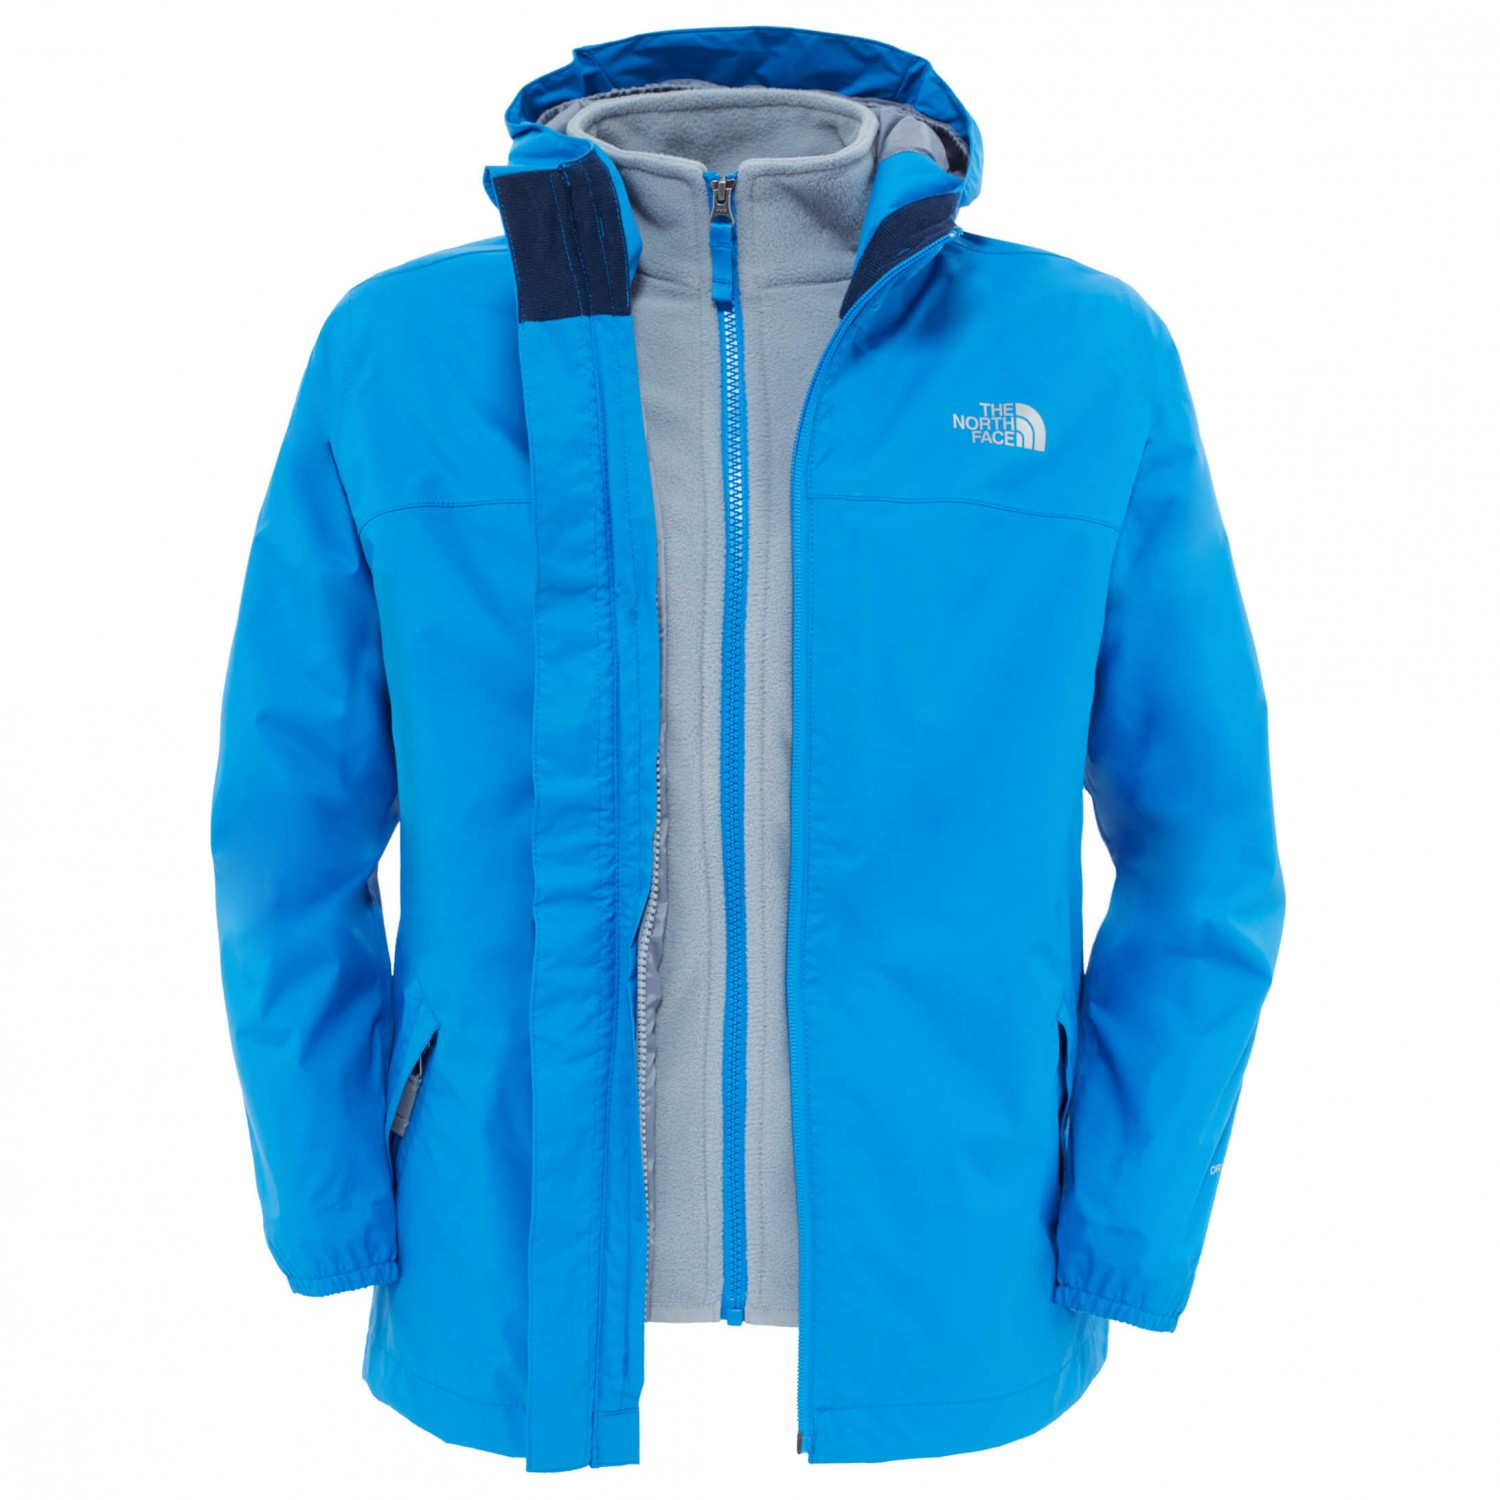 popular style new buy popular The North Face - Boy's Elden Rain TriClimate Jacket - 3-in-1 jacket